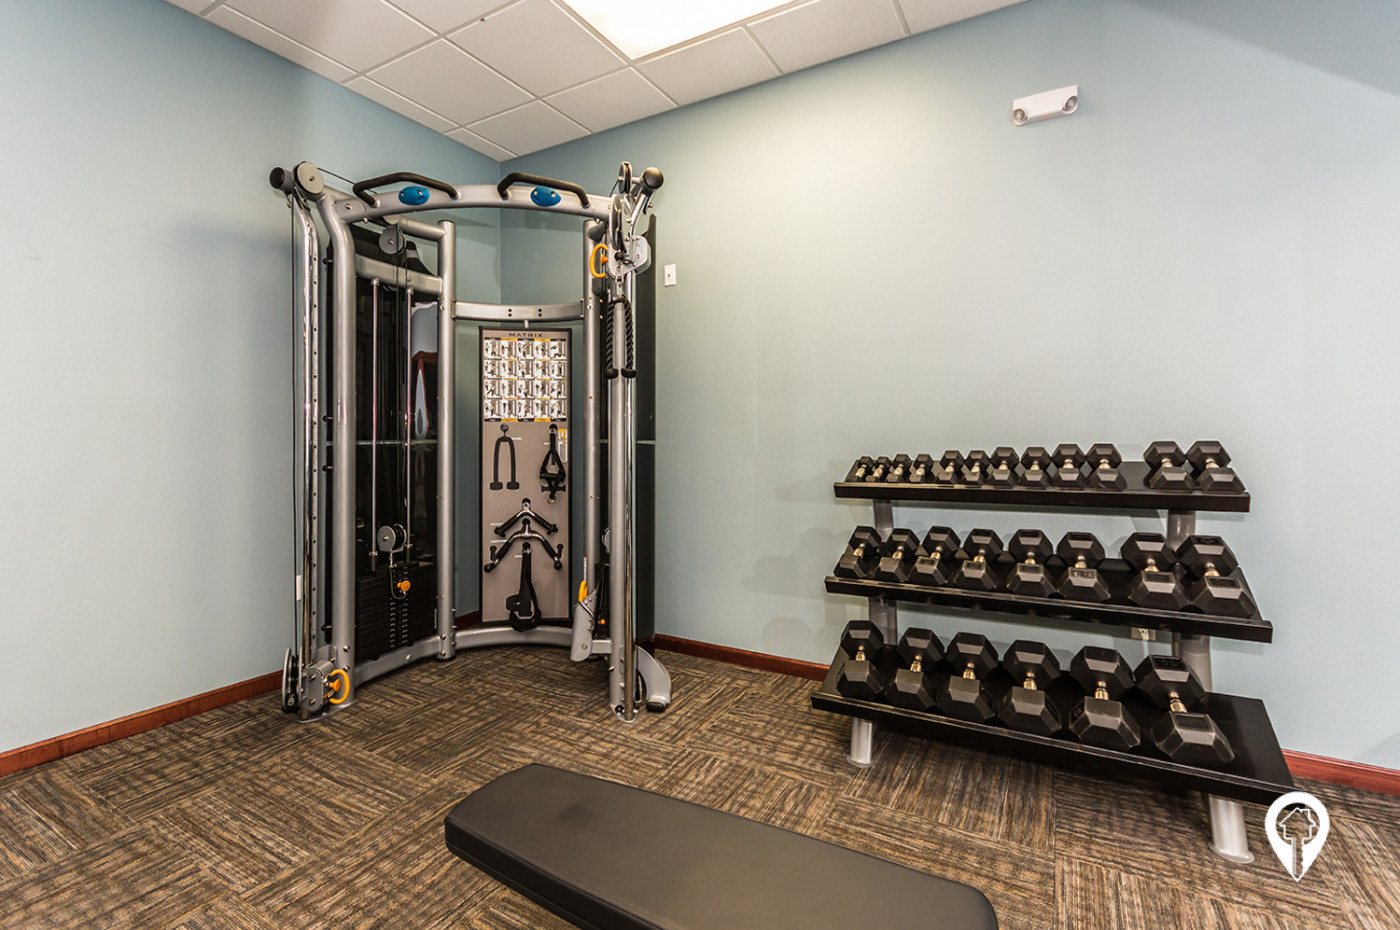 The-Legacy-Apartments-Fitness-center-with-weights-cardio-equipment